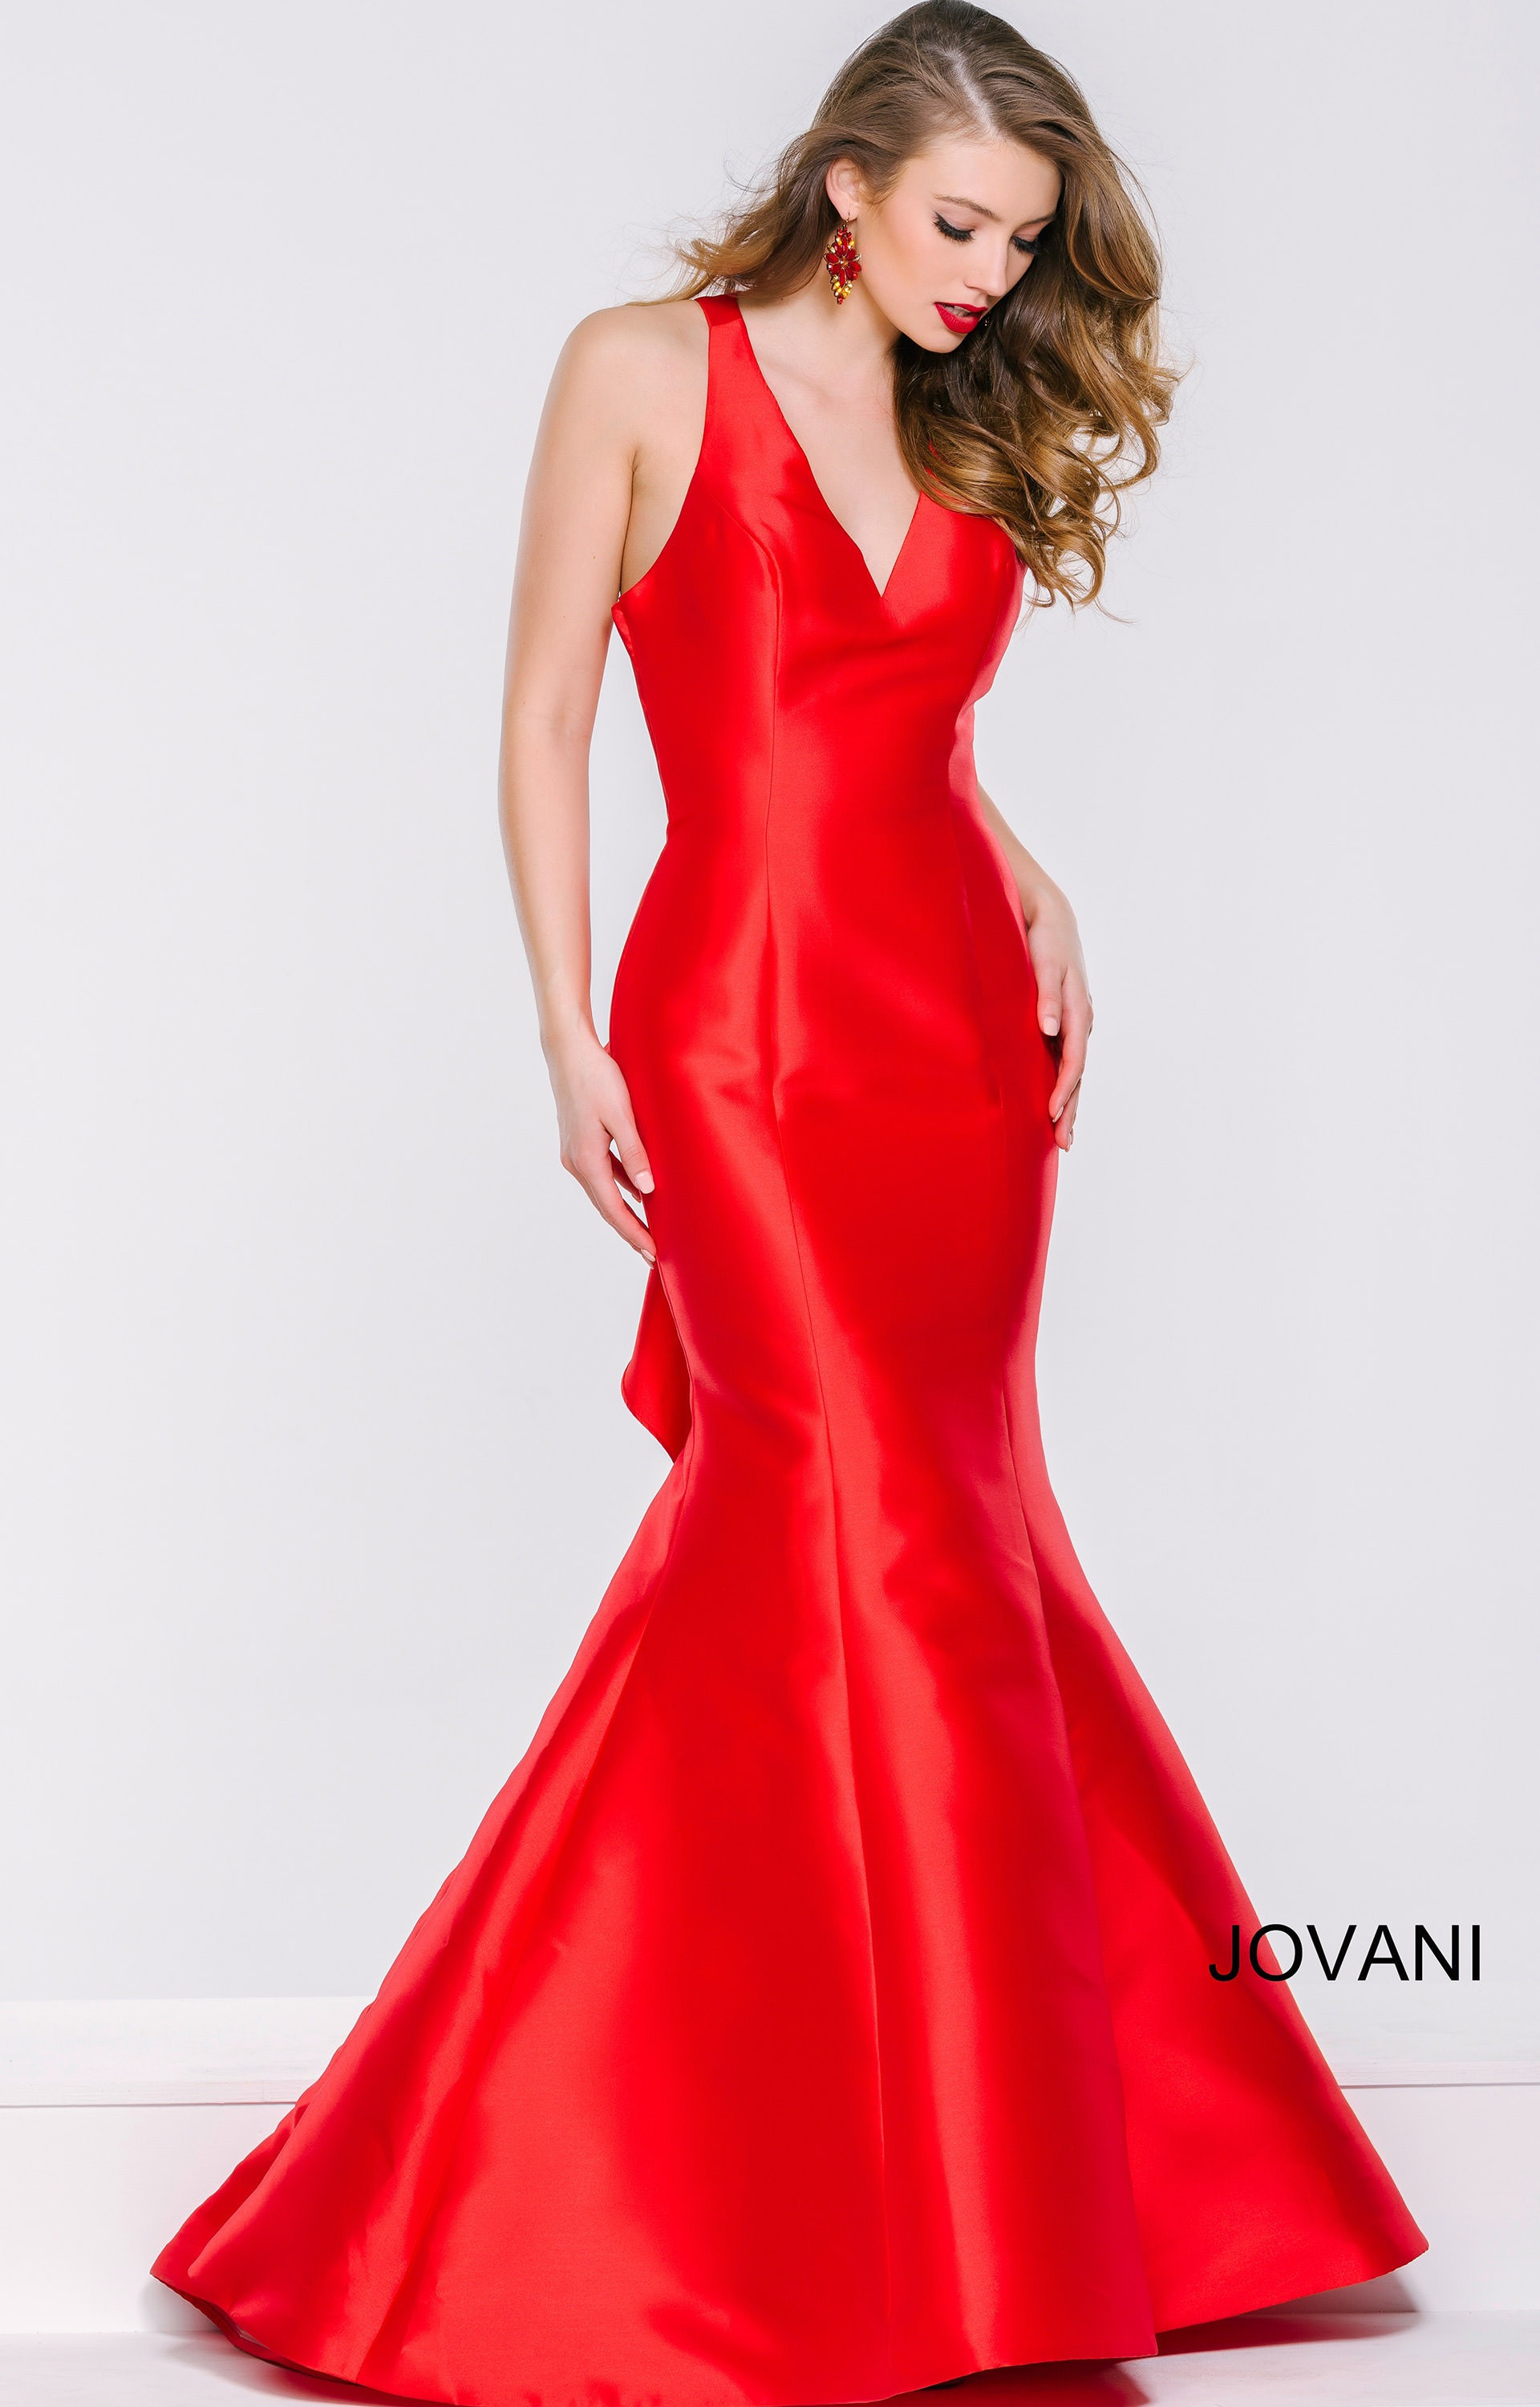 Jovani 40780 Shiny Satin Fit And Flare With Ruffle